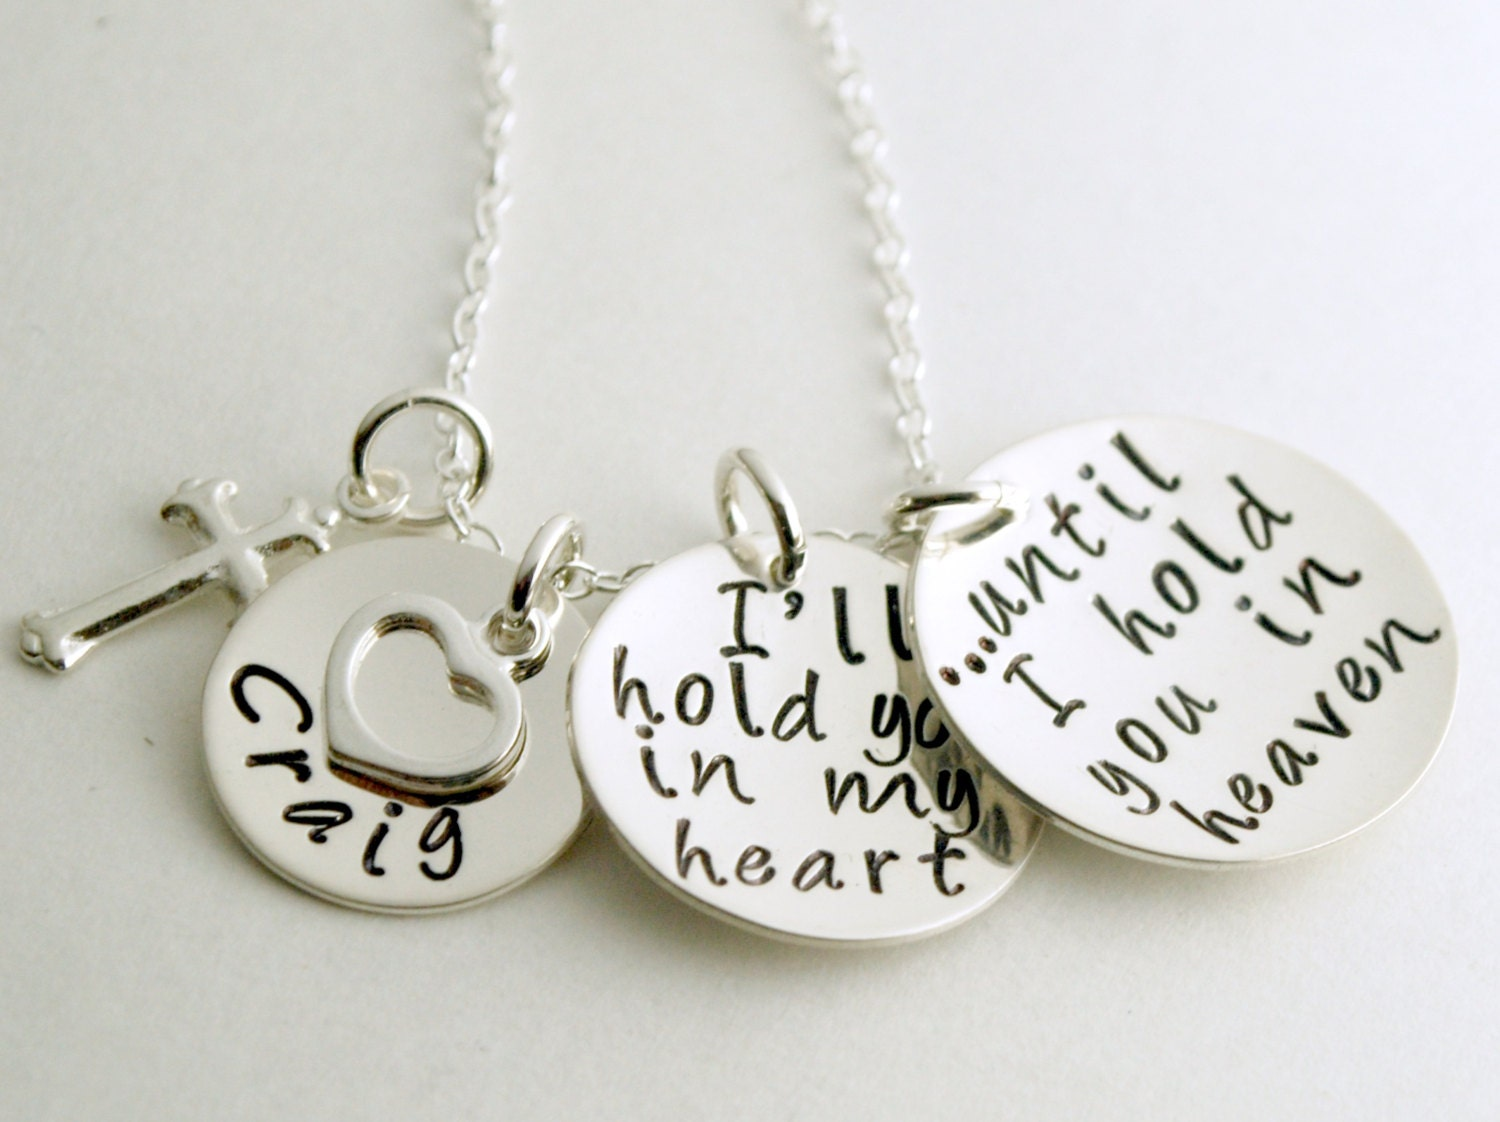 memorial necklace in memory of a loved one with custom name